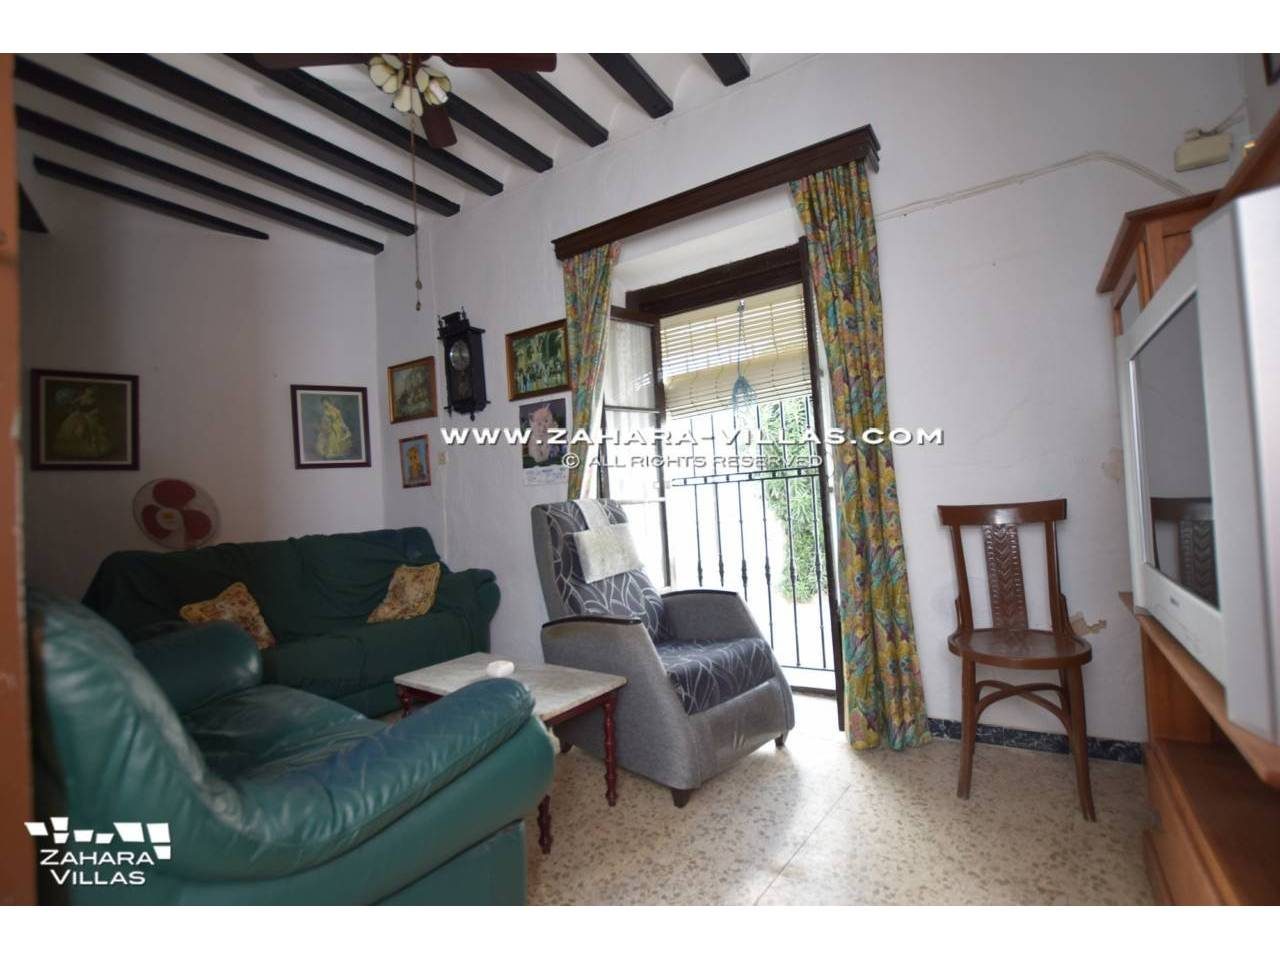 Imagen 4 de House for sale located in pedestrian street of Vejer de la Frontera